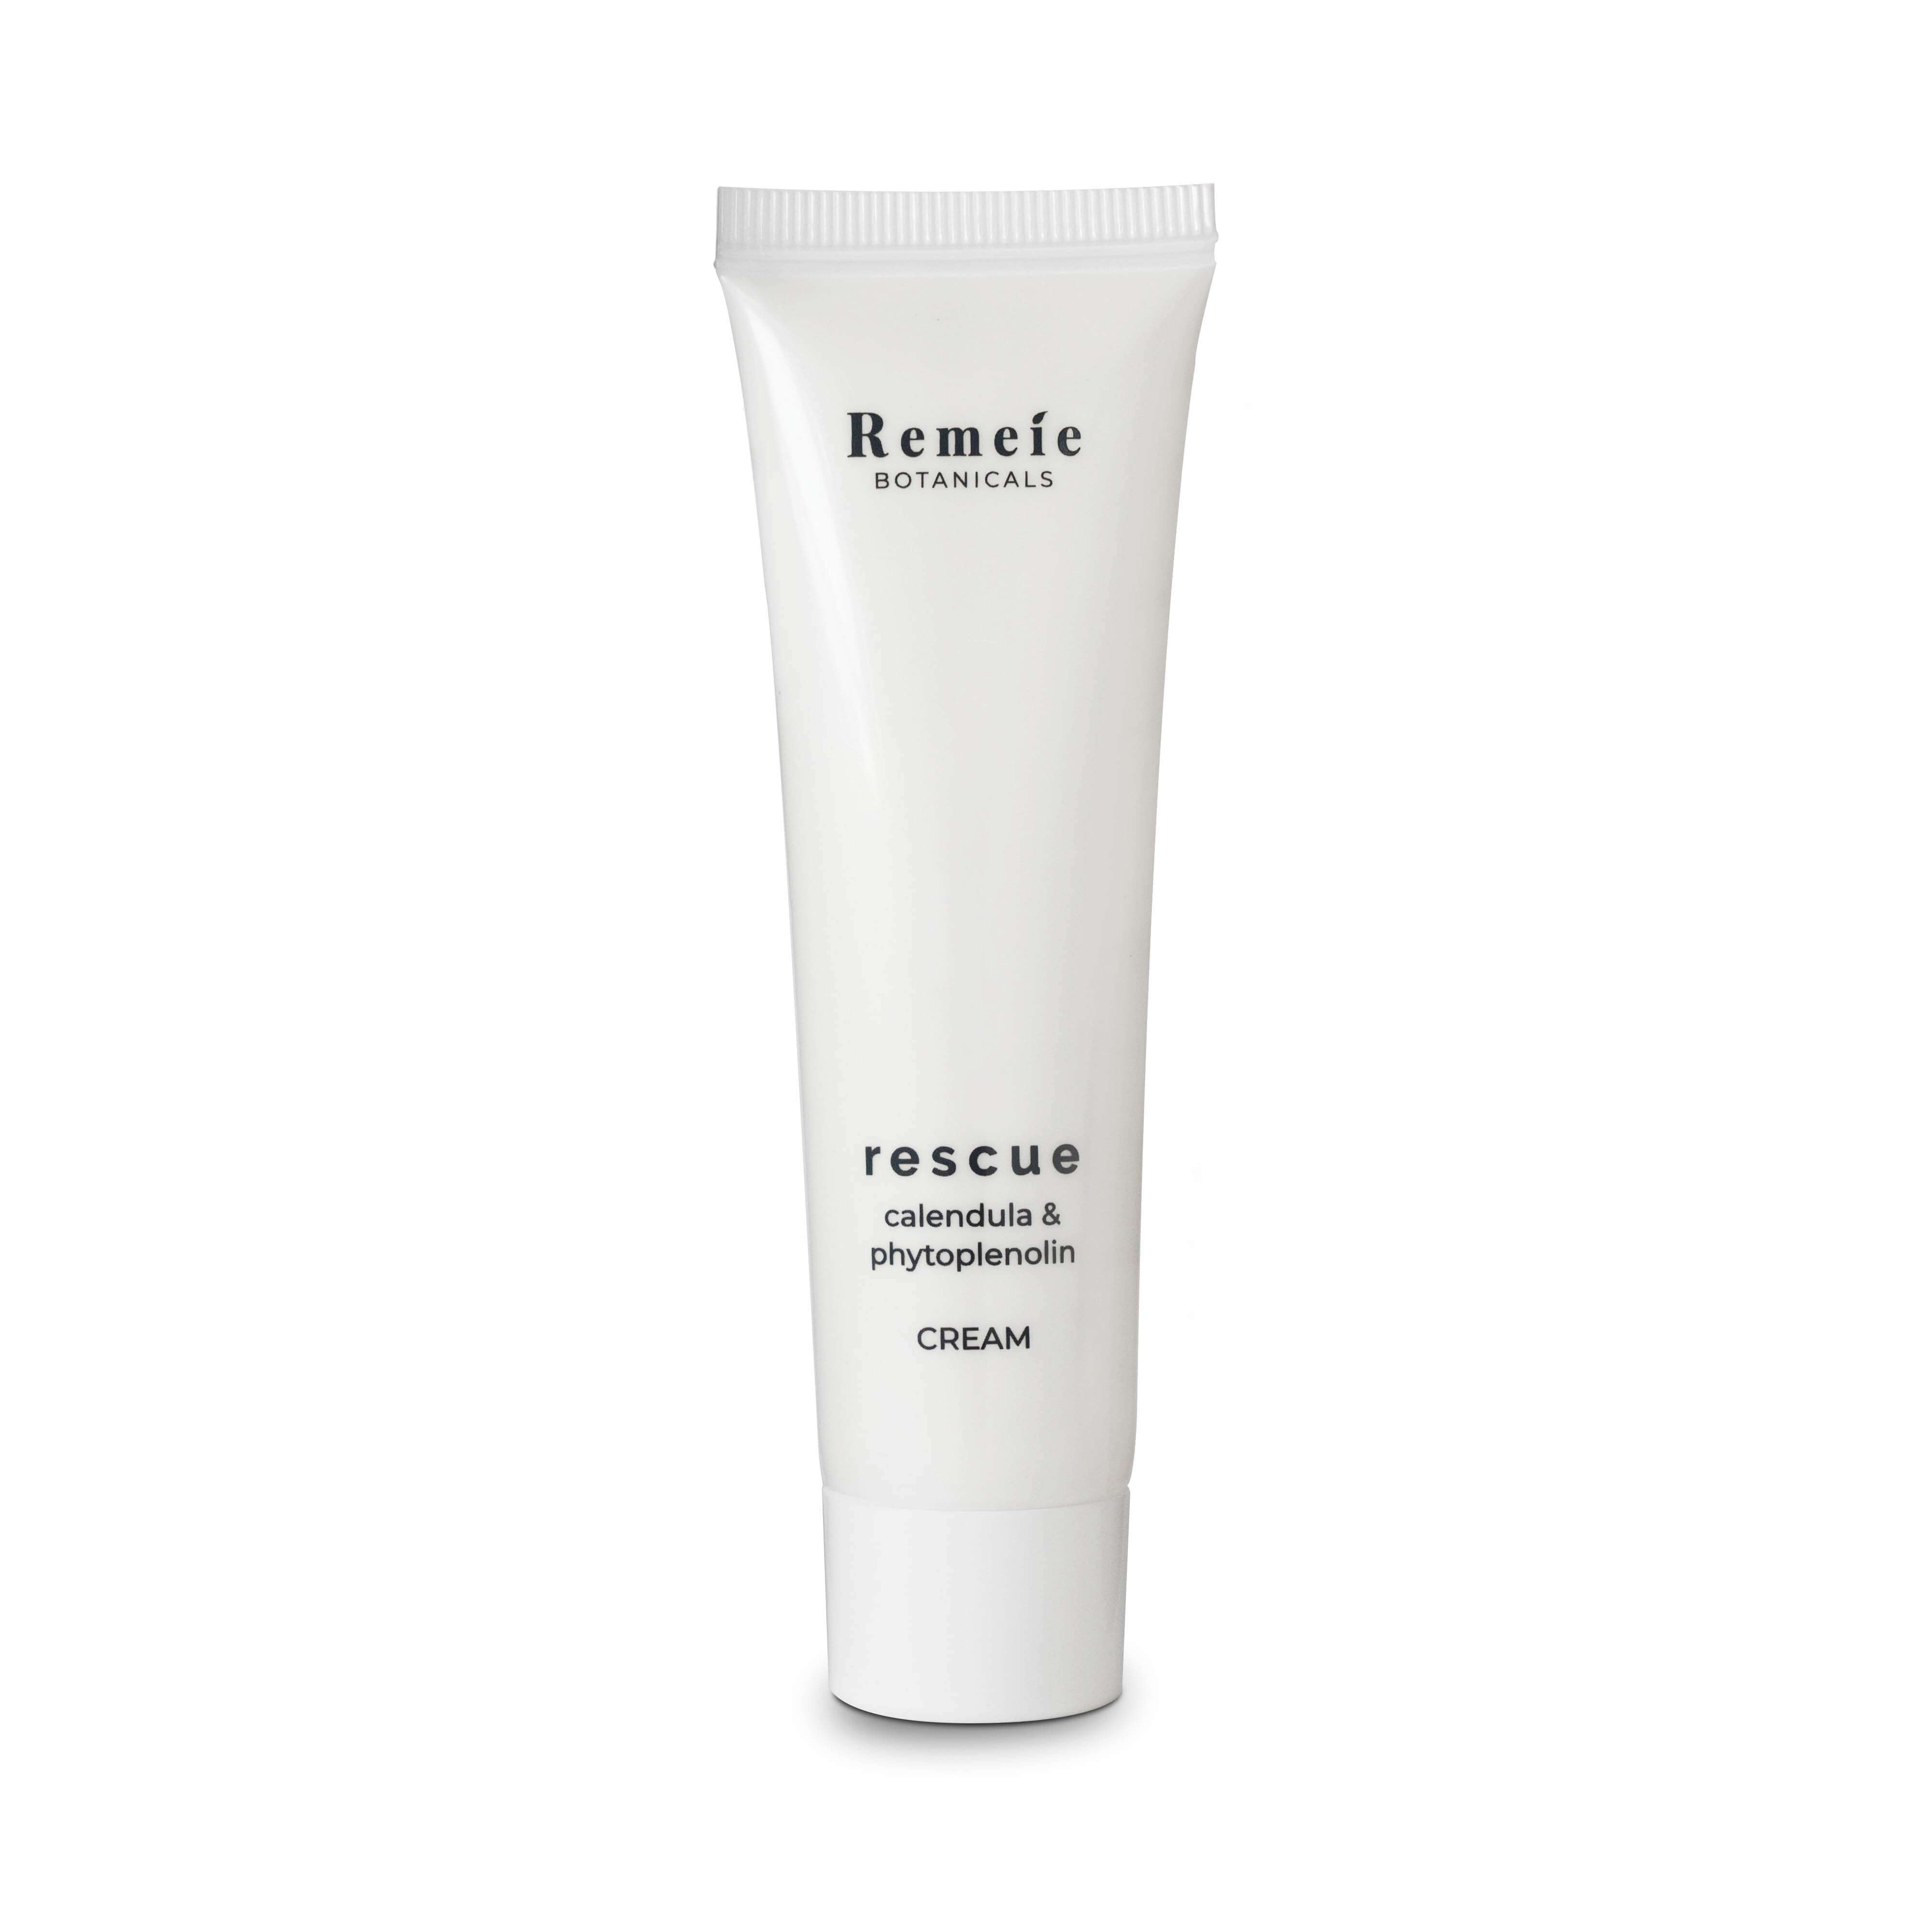 Remeie Botanicals Rescue Cream